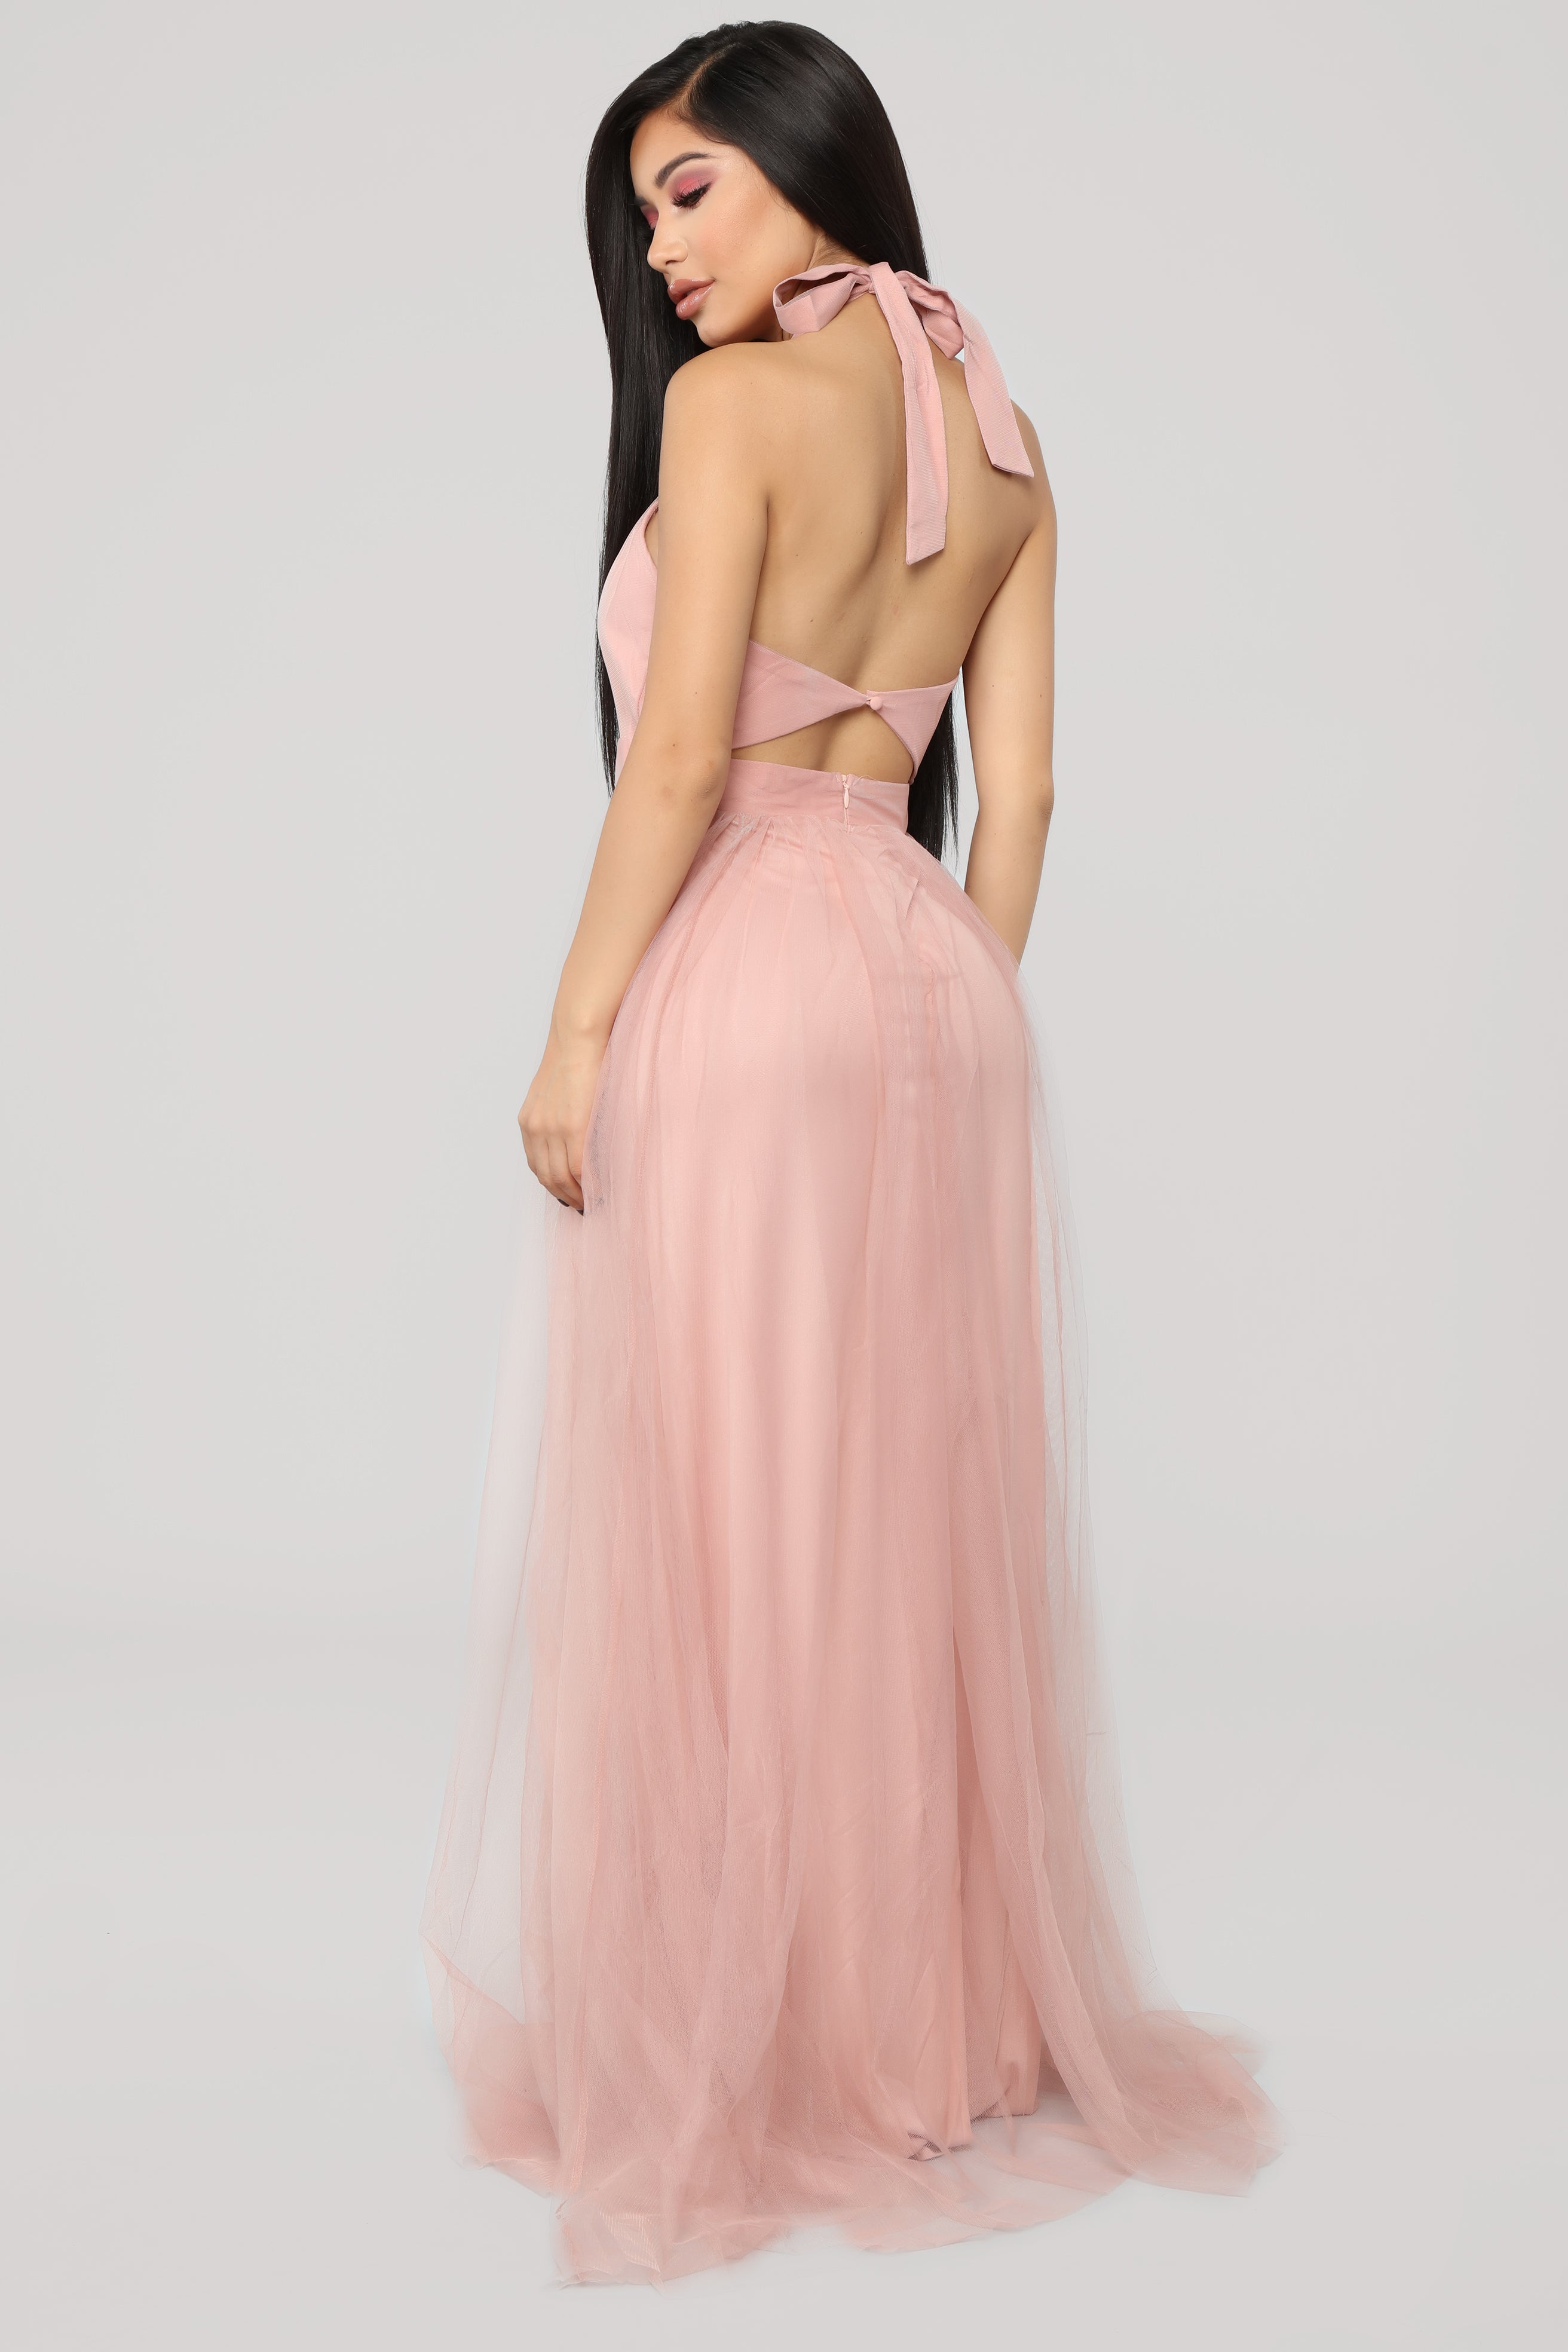 c41d33039a45 Off The Tulle Gown - Blush